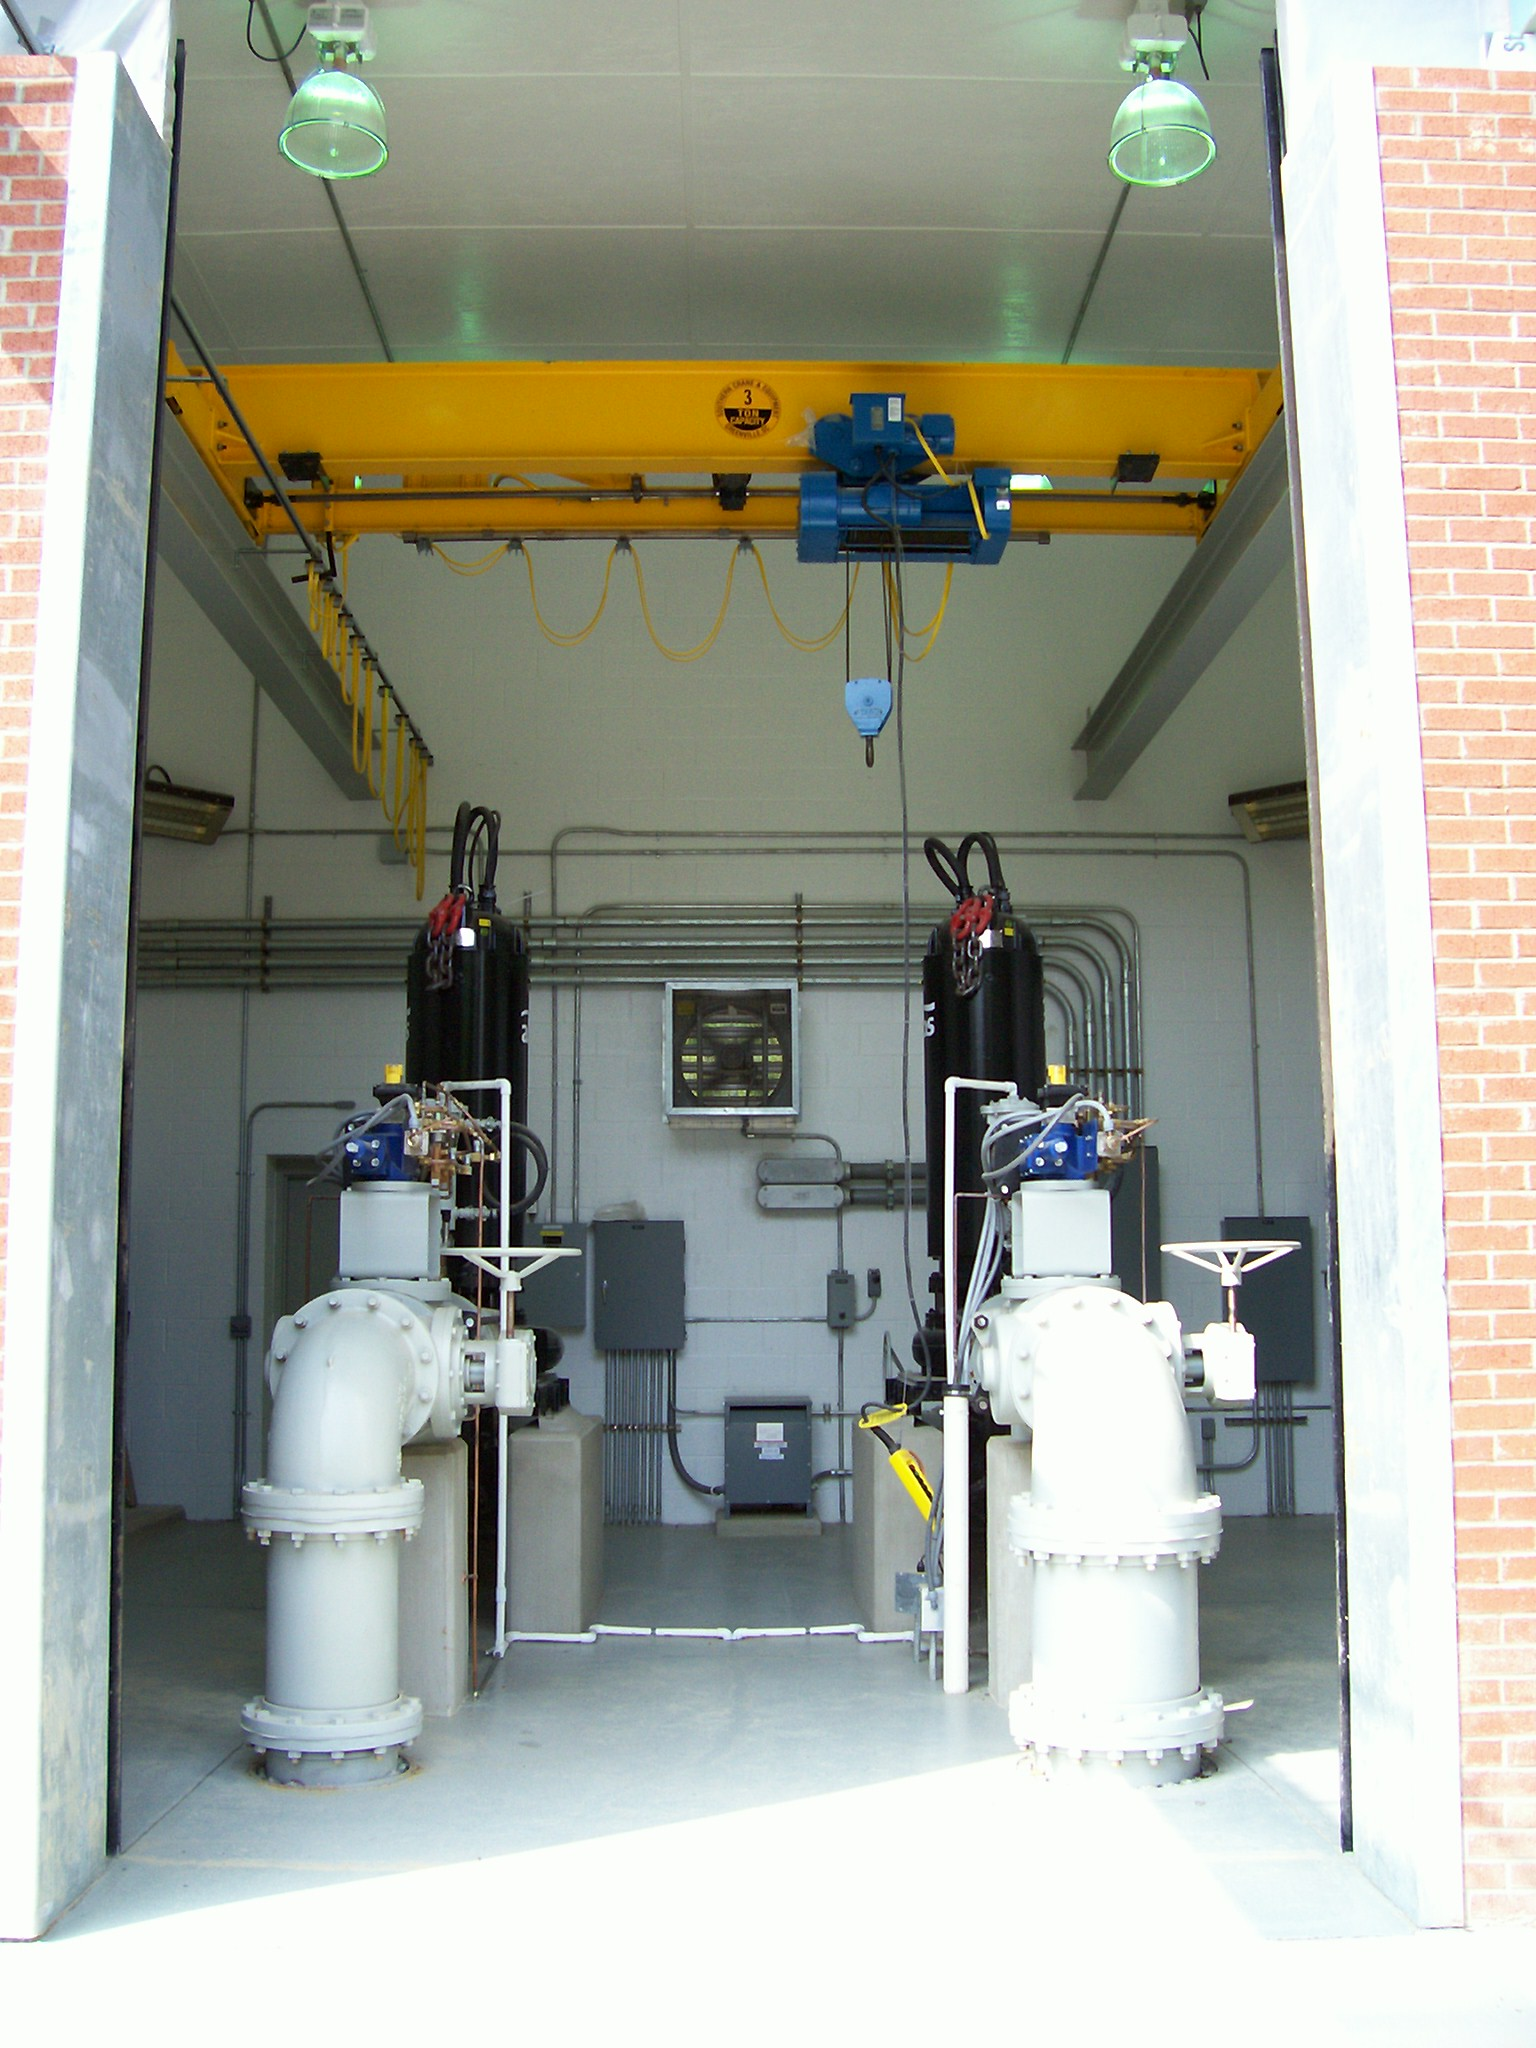 Apex's Kelly Rd. Pump Station